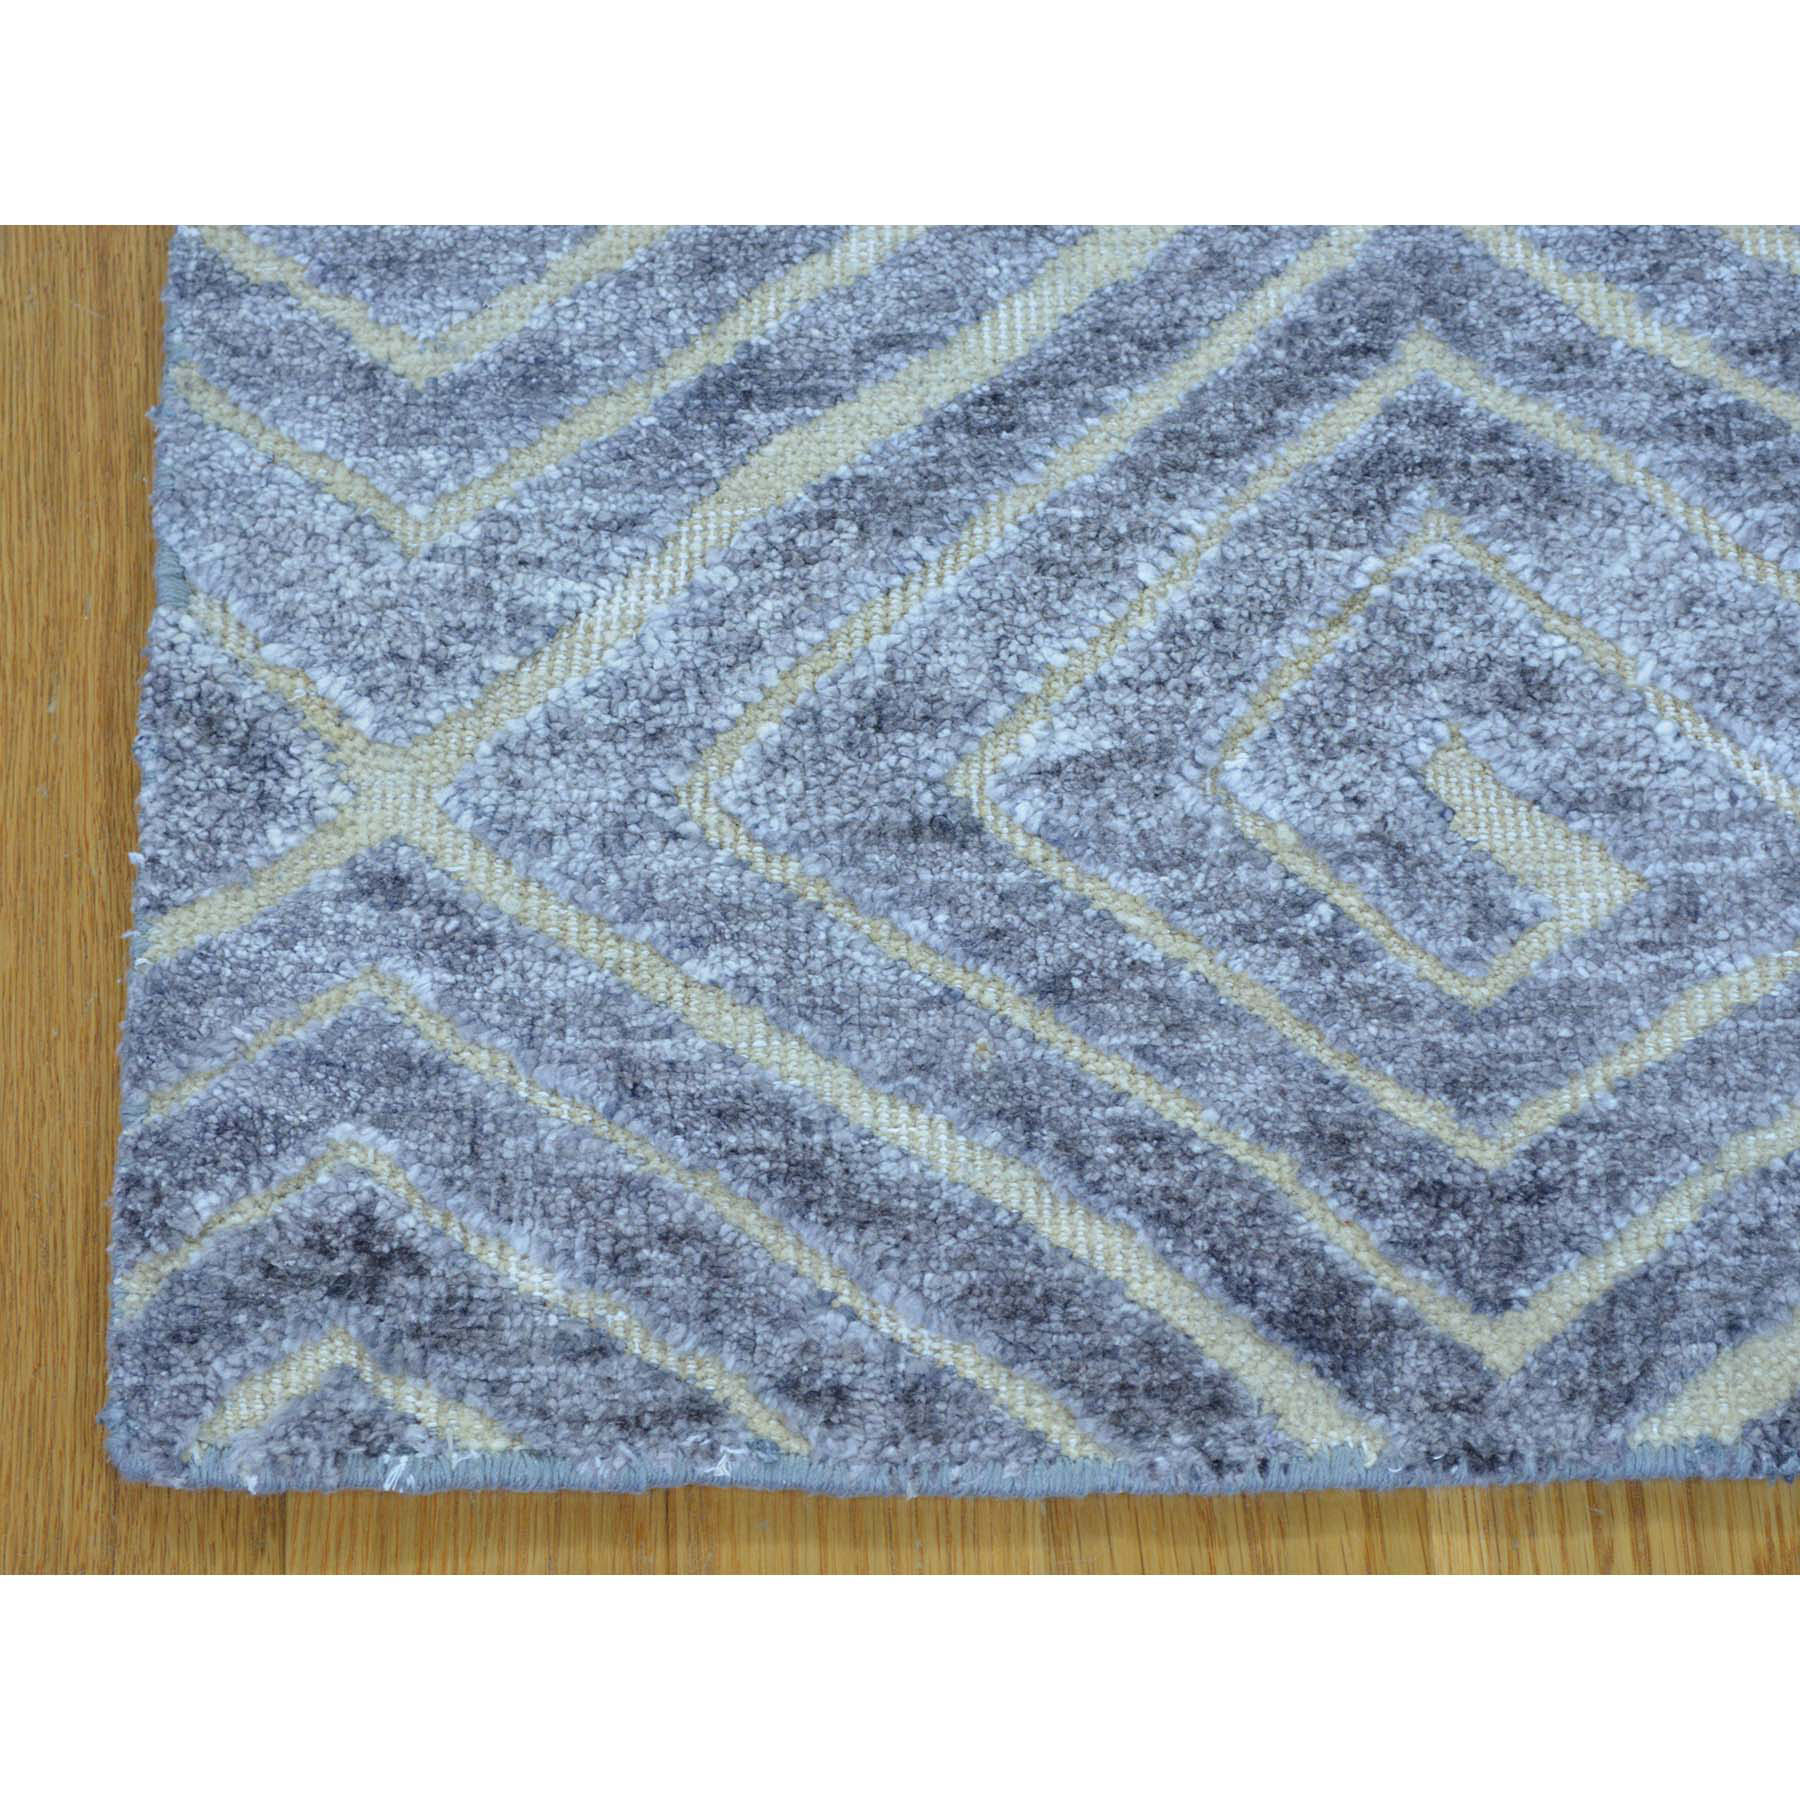 2- x 3- Wool and Silk High and Low Pile Modern Hand Knotted Rug